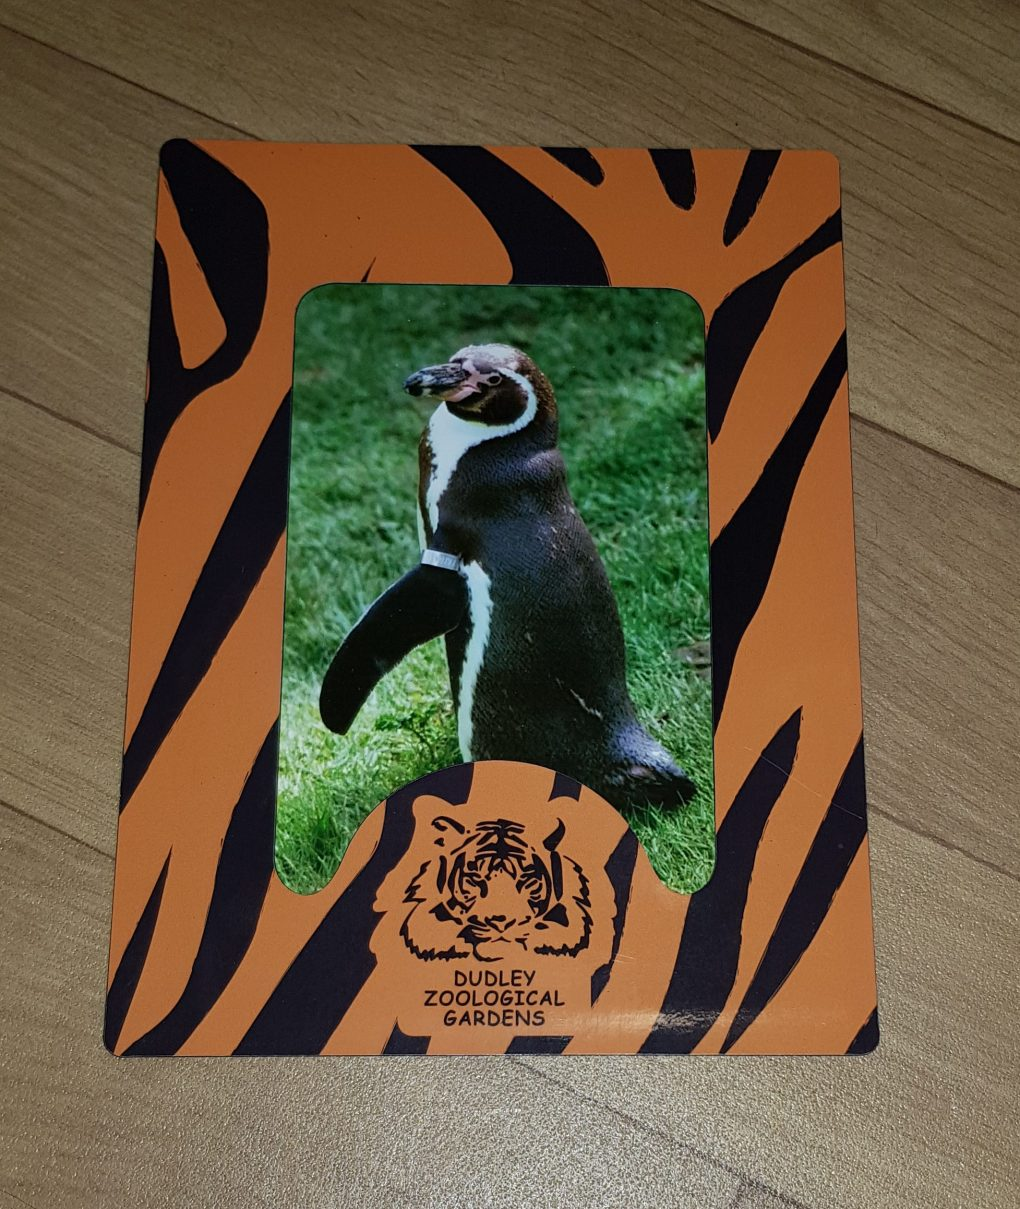 The picture that came with the penguin adoption pack from Dudley Zoo. A picture of a penguin is in a black and orange striped frame which says Dudley Zoological gardens at the bottom